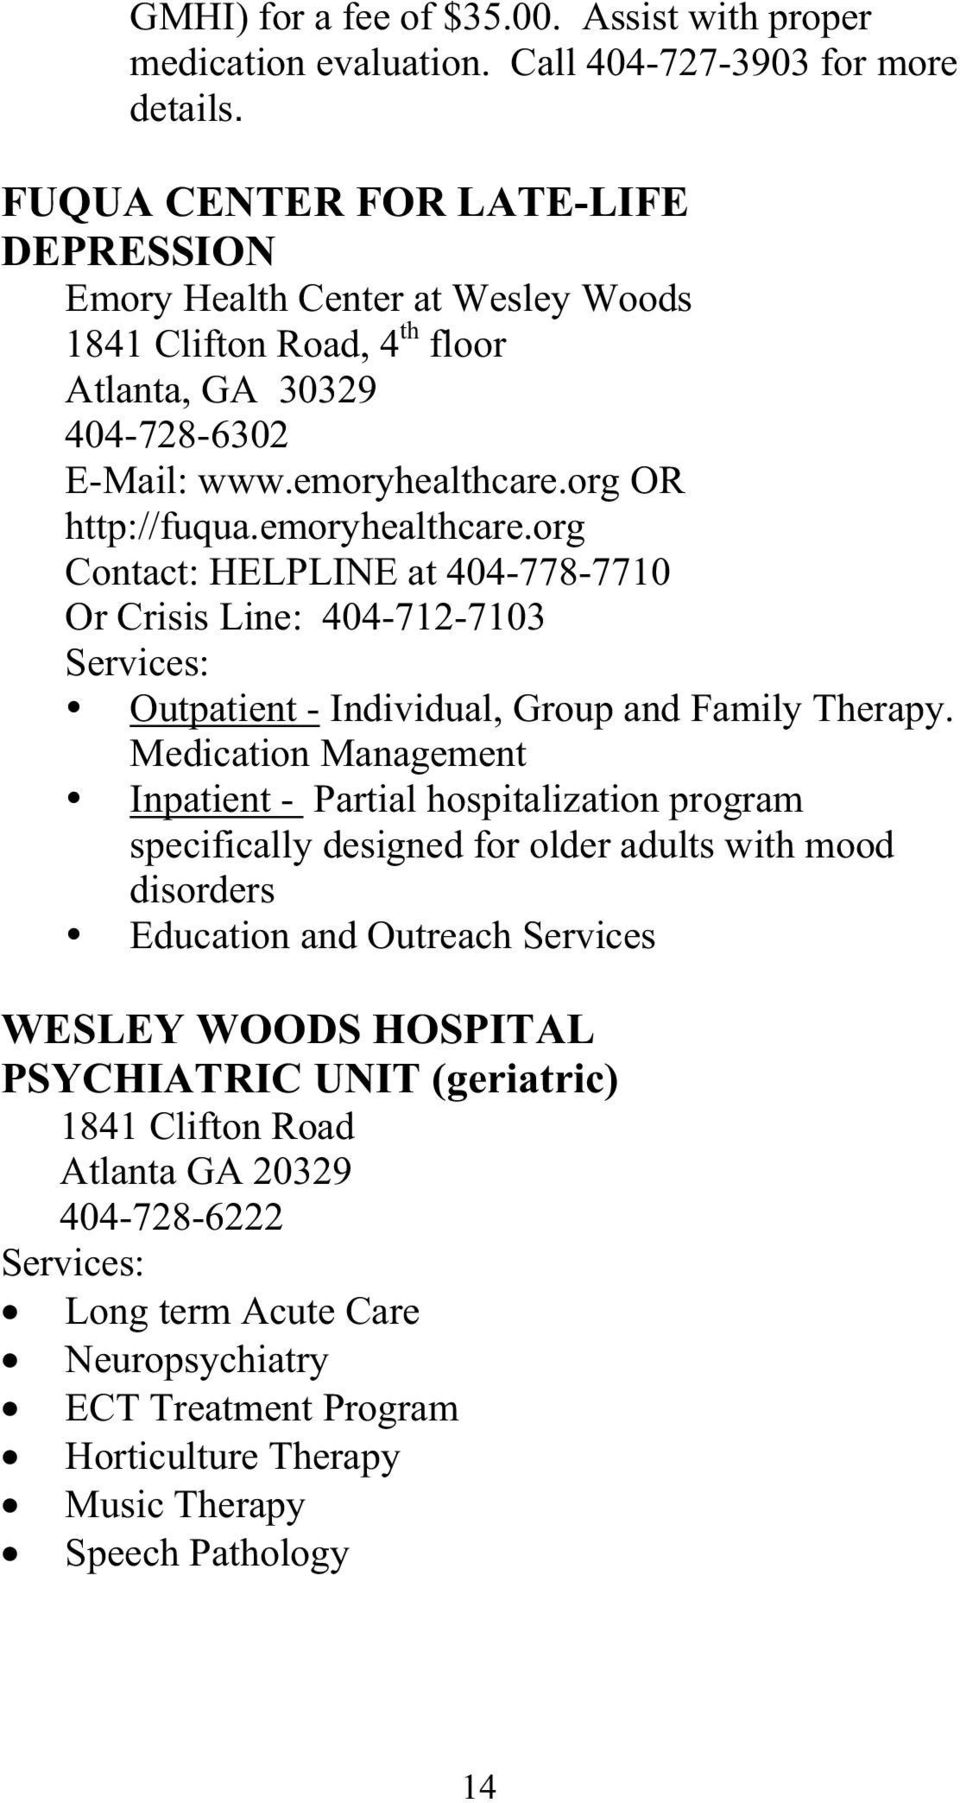 org OR http://fuqua.emoryhealthcare.org Contact: HELPLINE at 404-778-7710 Or Crisis Line: 404-712-7103 Services: Outpatient - Individual, Group and Family Therapy.